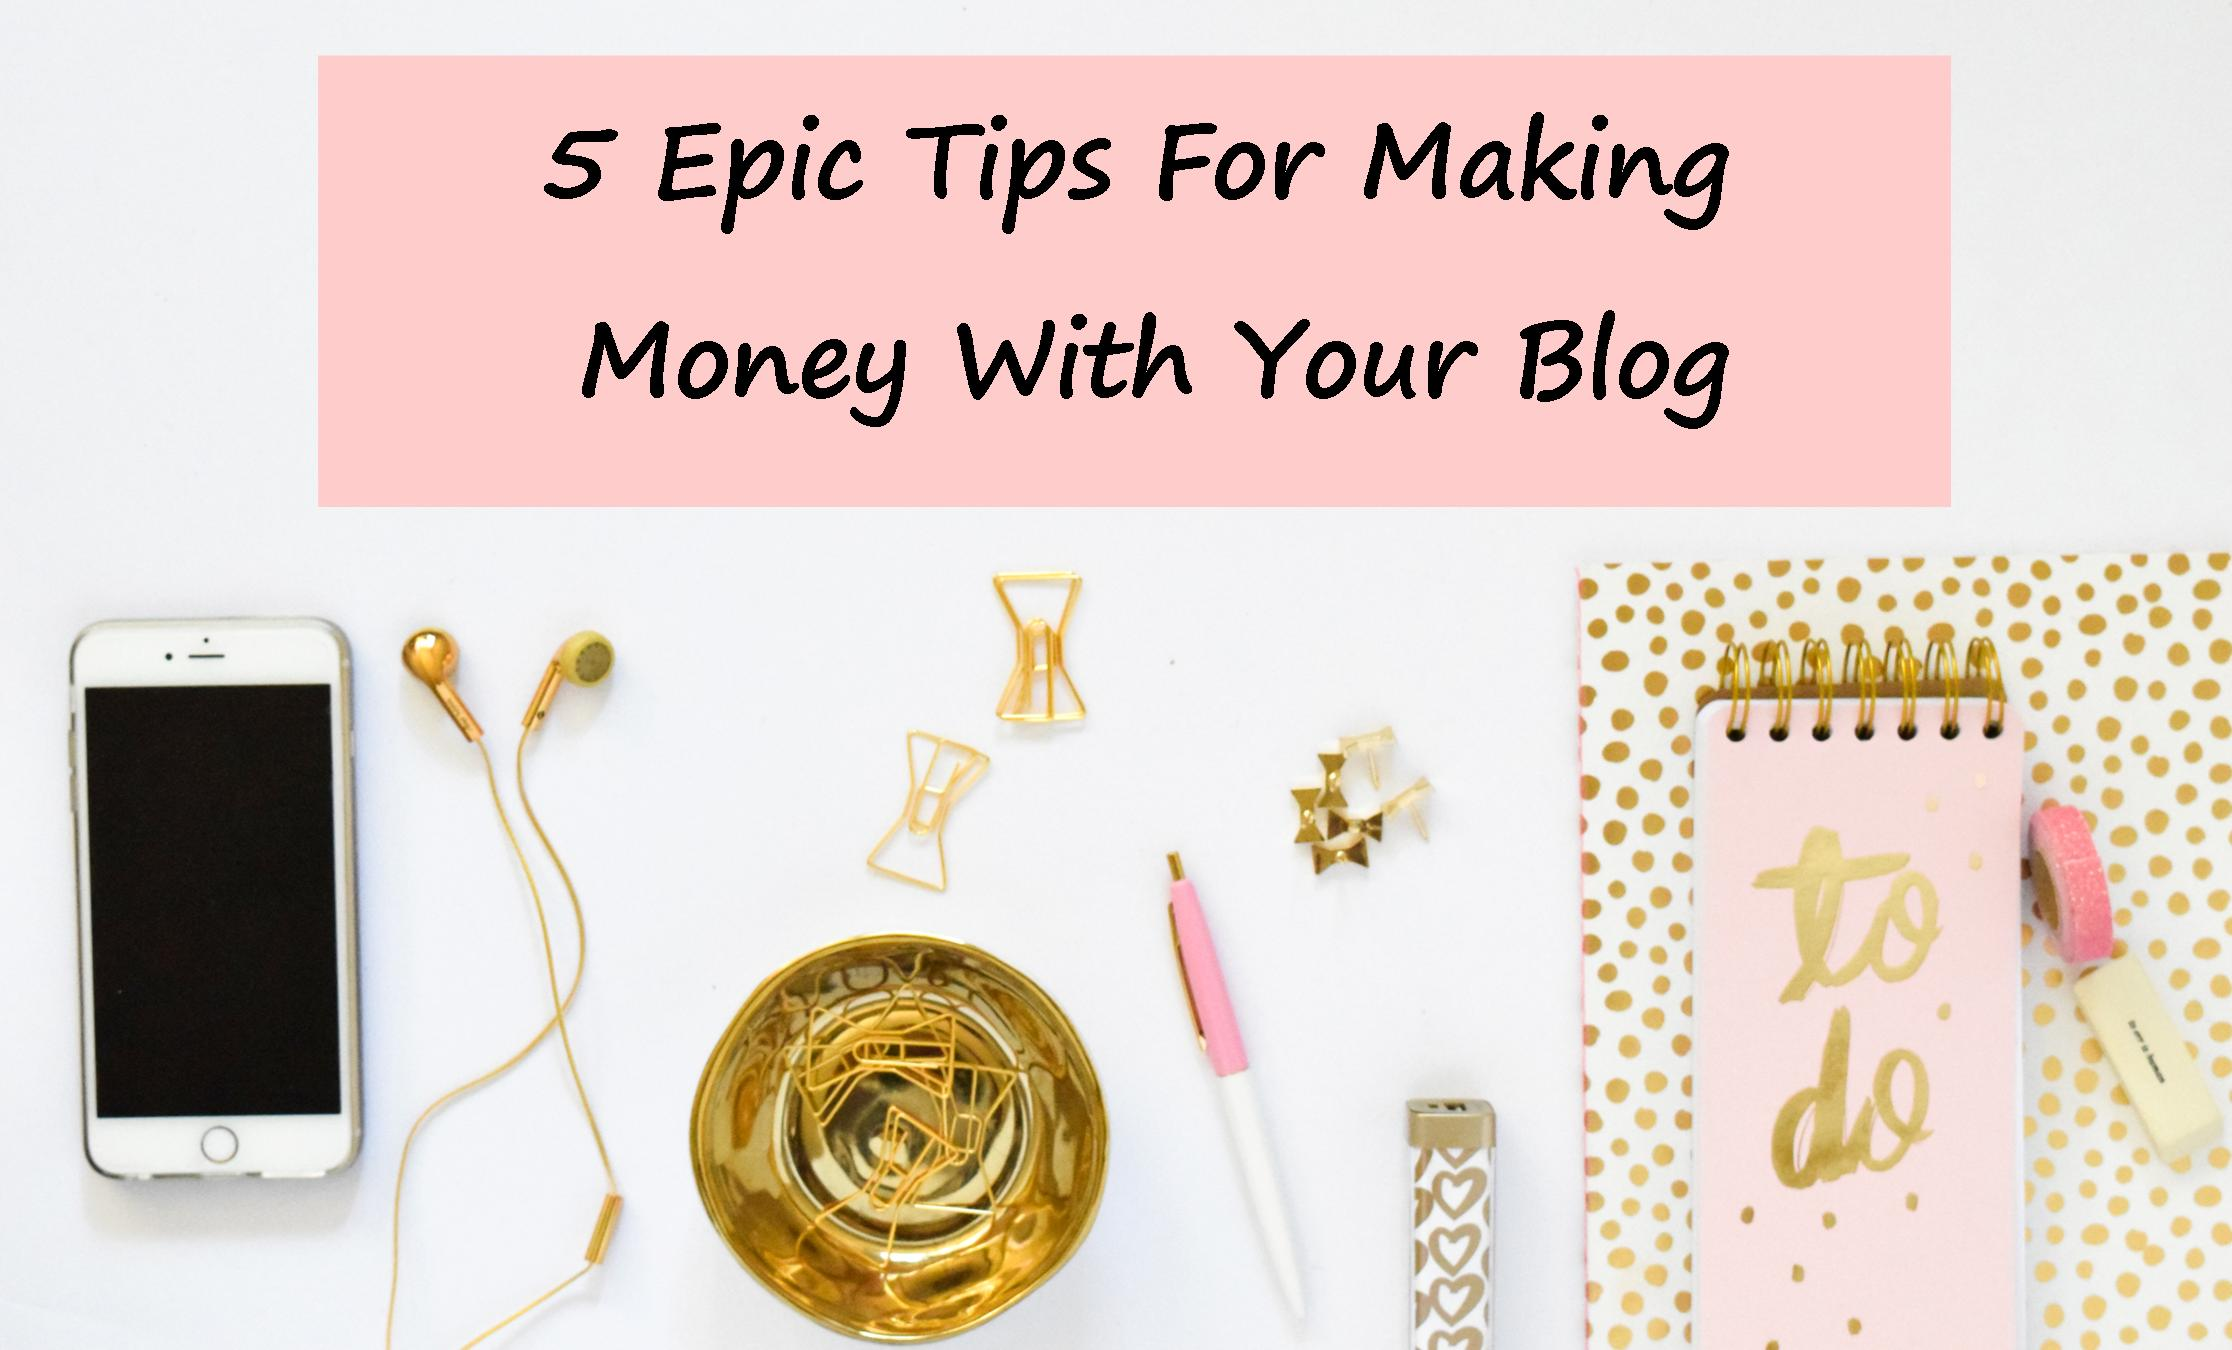 5 Epic Tips For Making Money With Your Blog